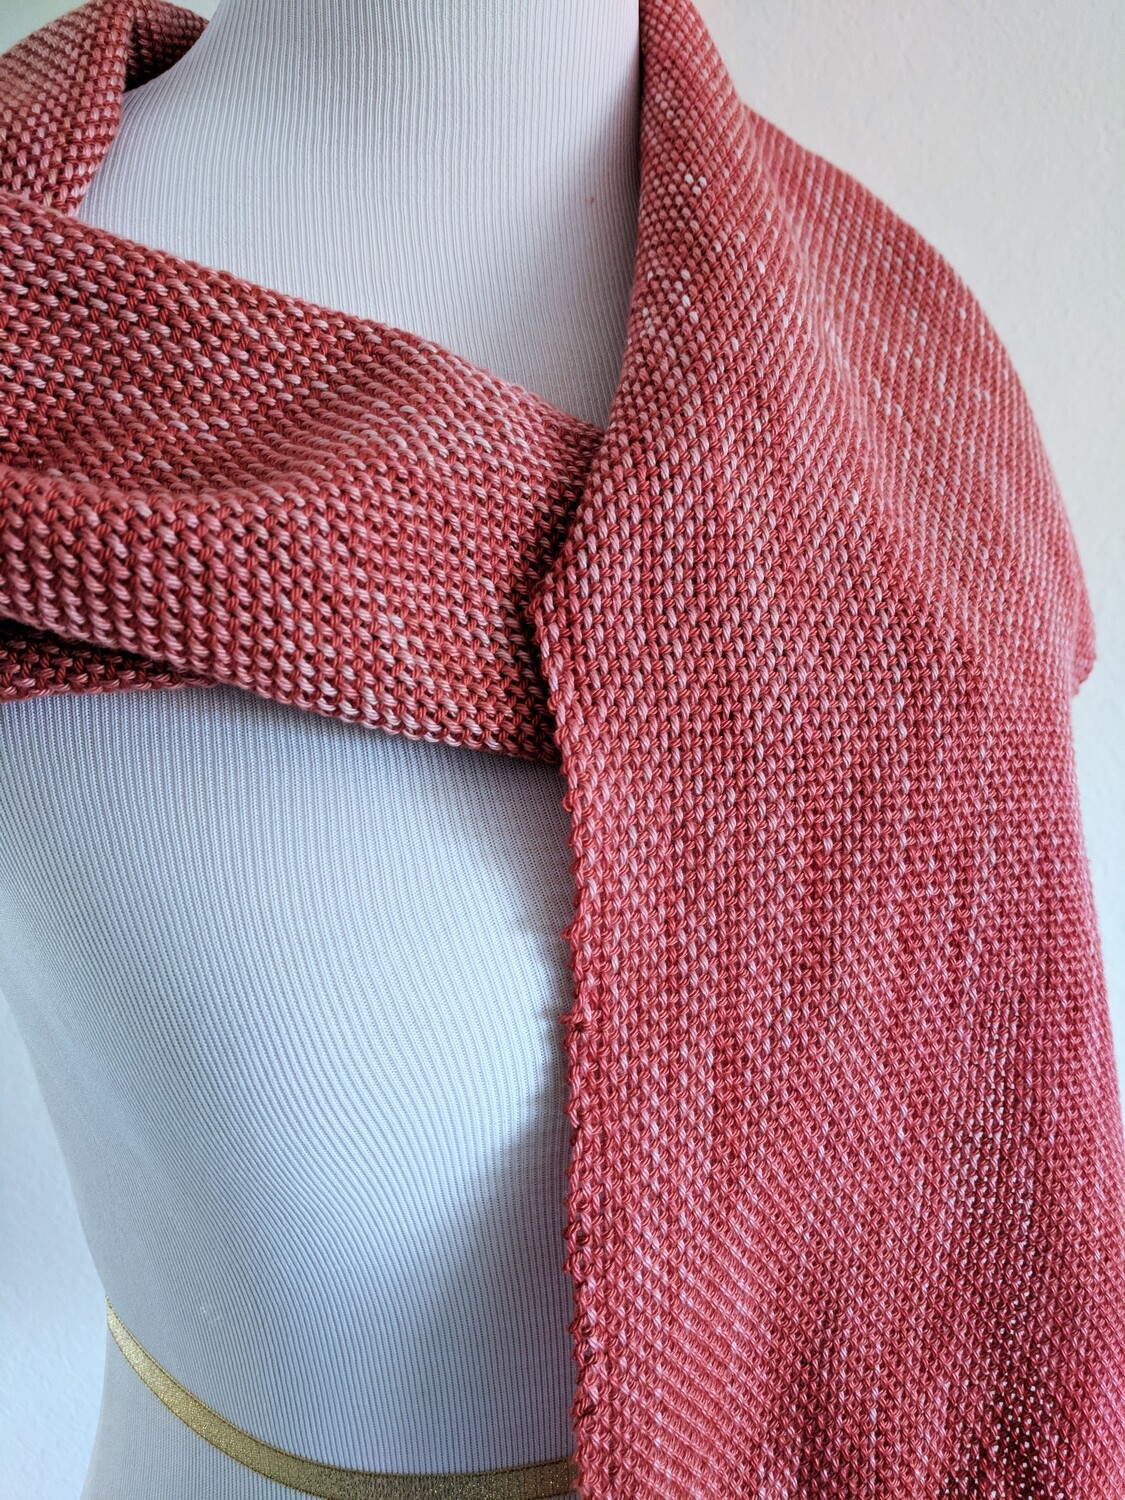 "RED OMBRE' - 66"" - HANDWOVEN"